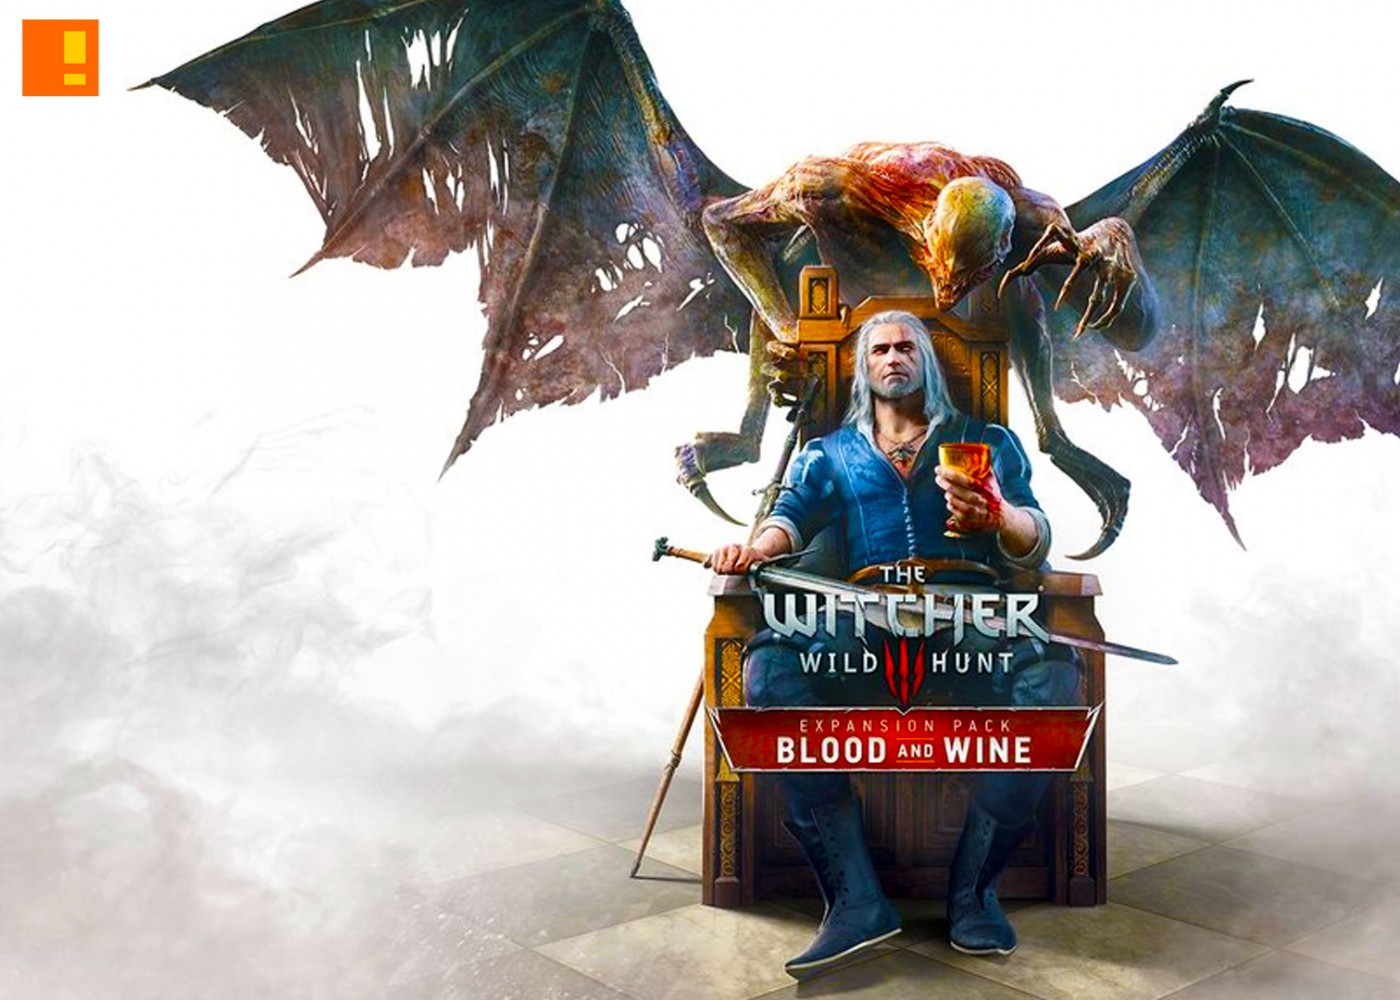 the witcher 3, wild hunt,blood and wine, dlc, cover art, expansion pack, downloadable content, cd projekt red, cpr,geralt, key art,